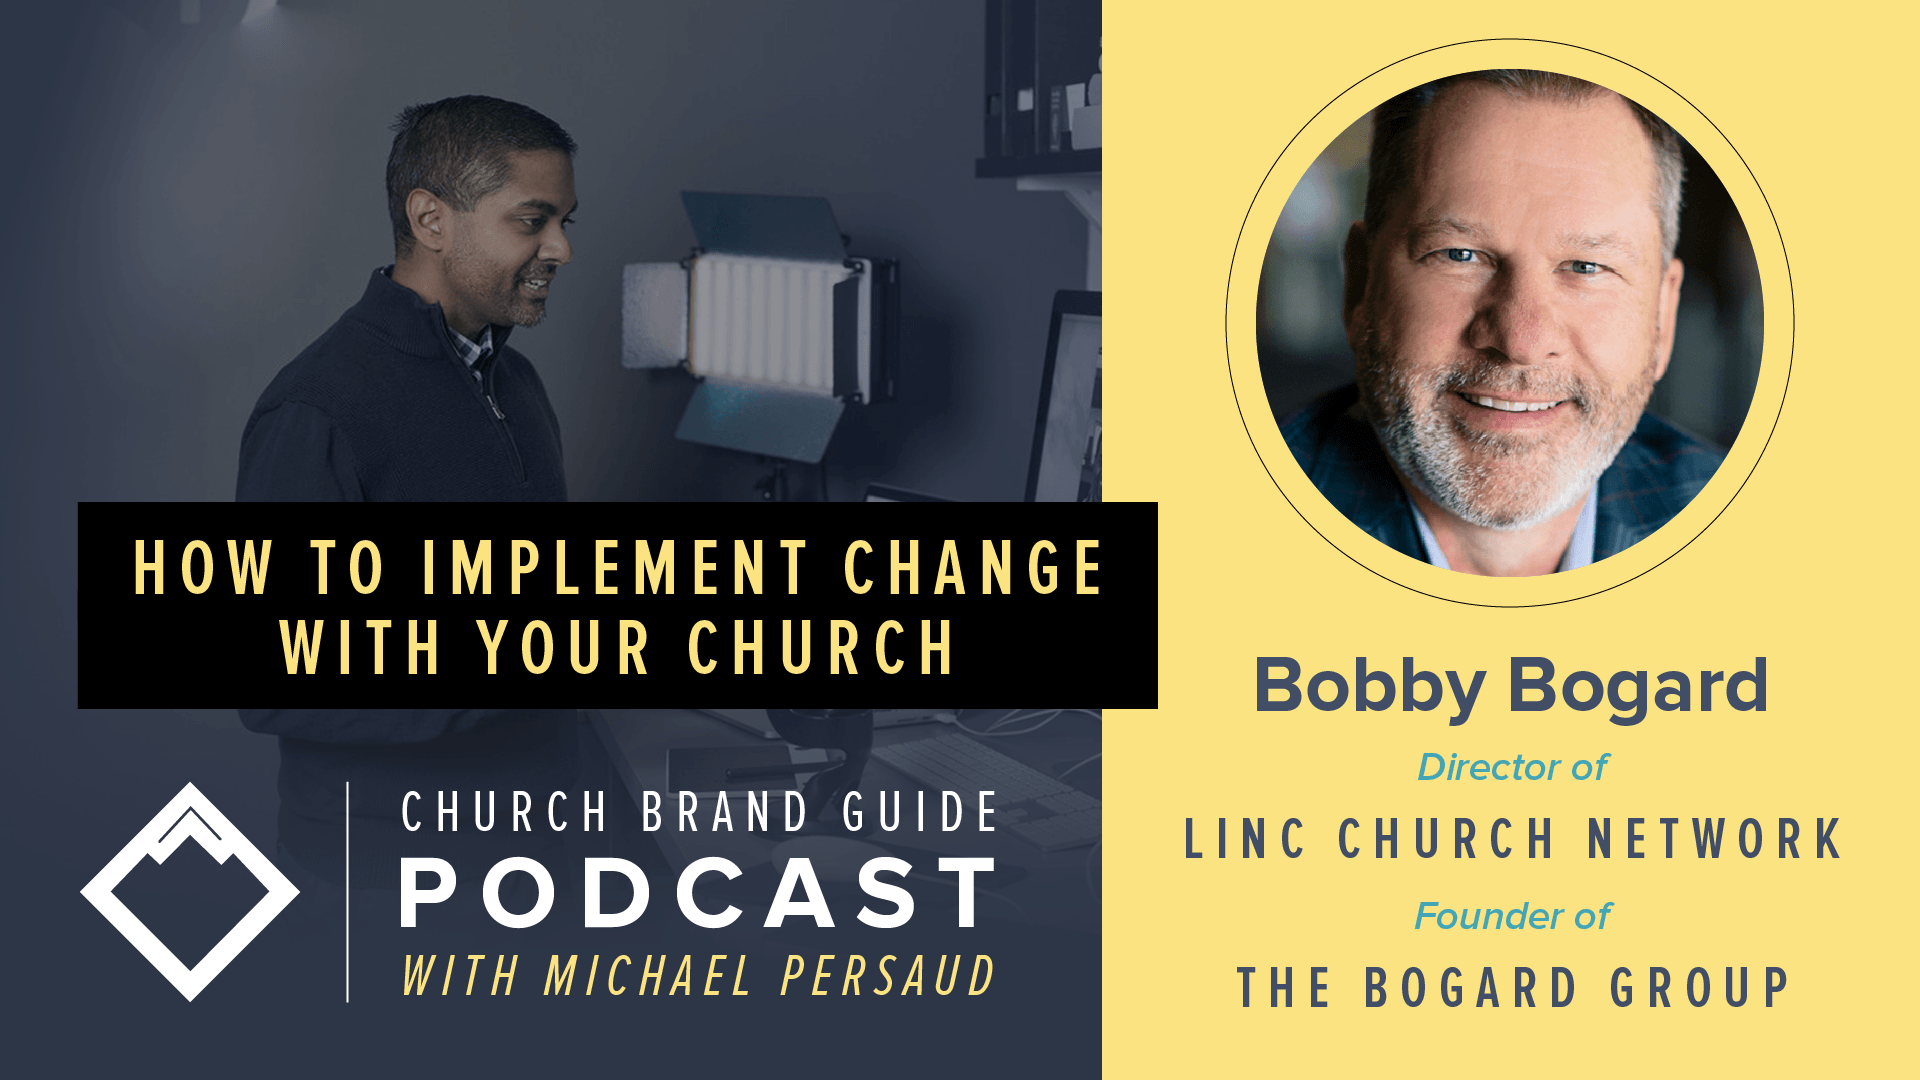 Bobby Bogard on the Church Brand Guide Podcast